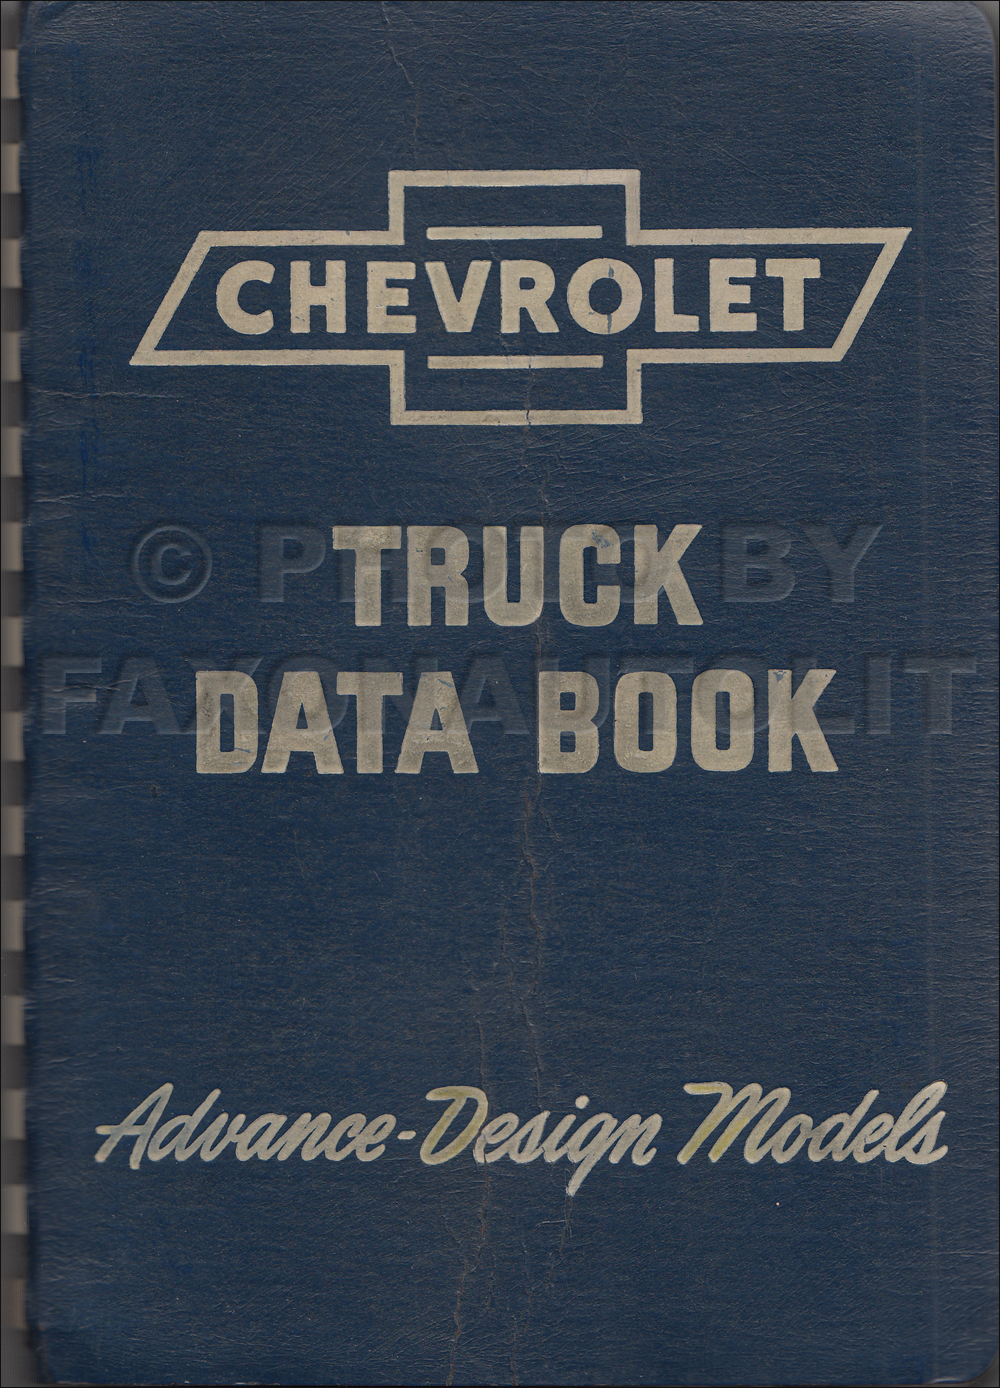 1947 Chevrolet Truck Data Book Original